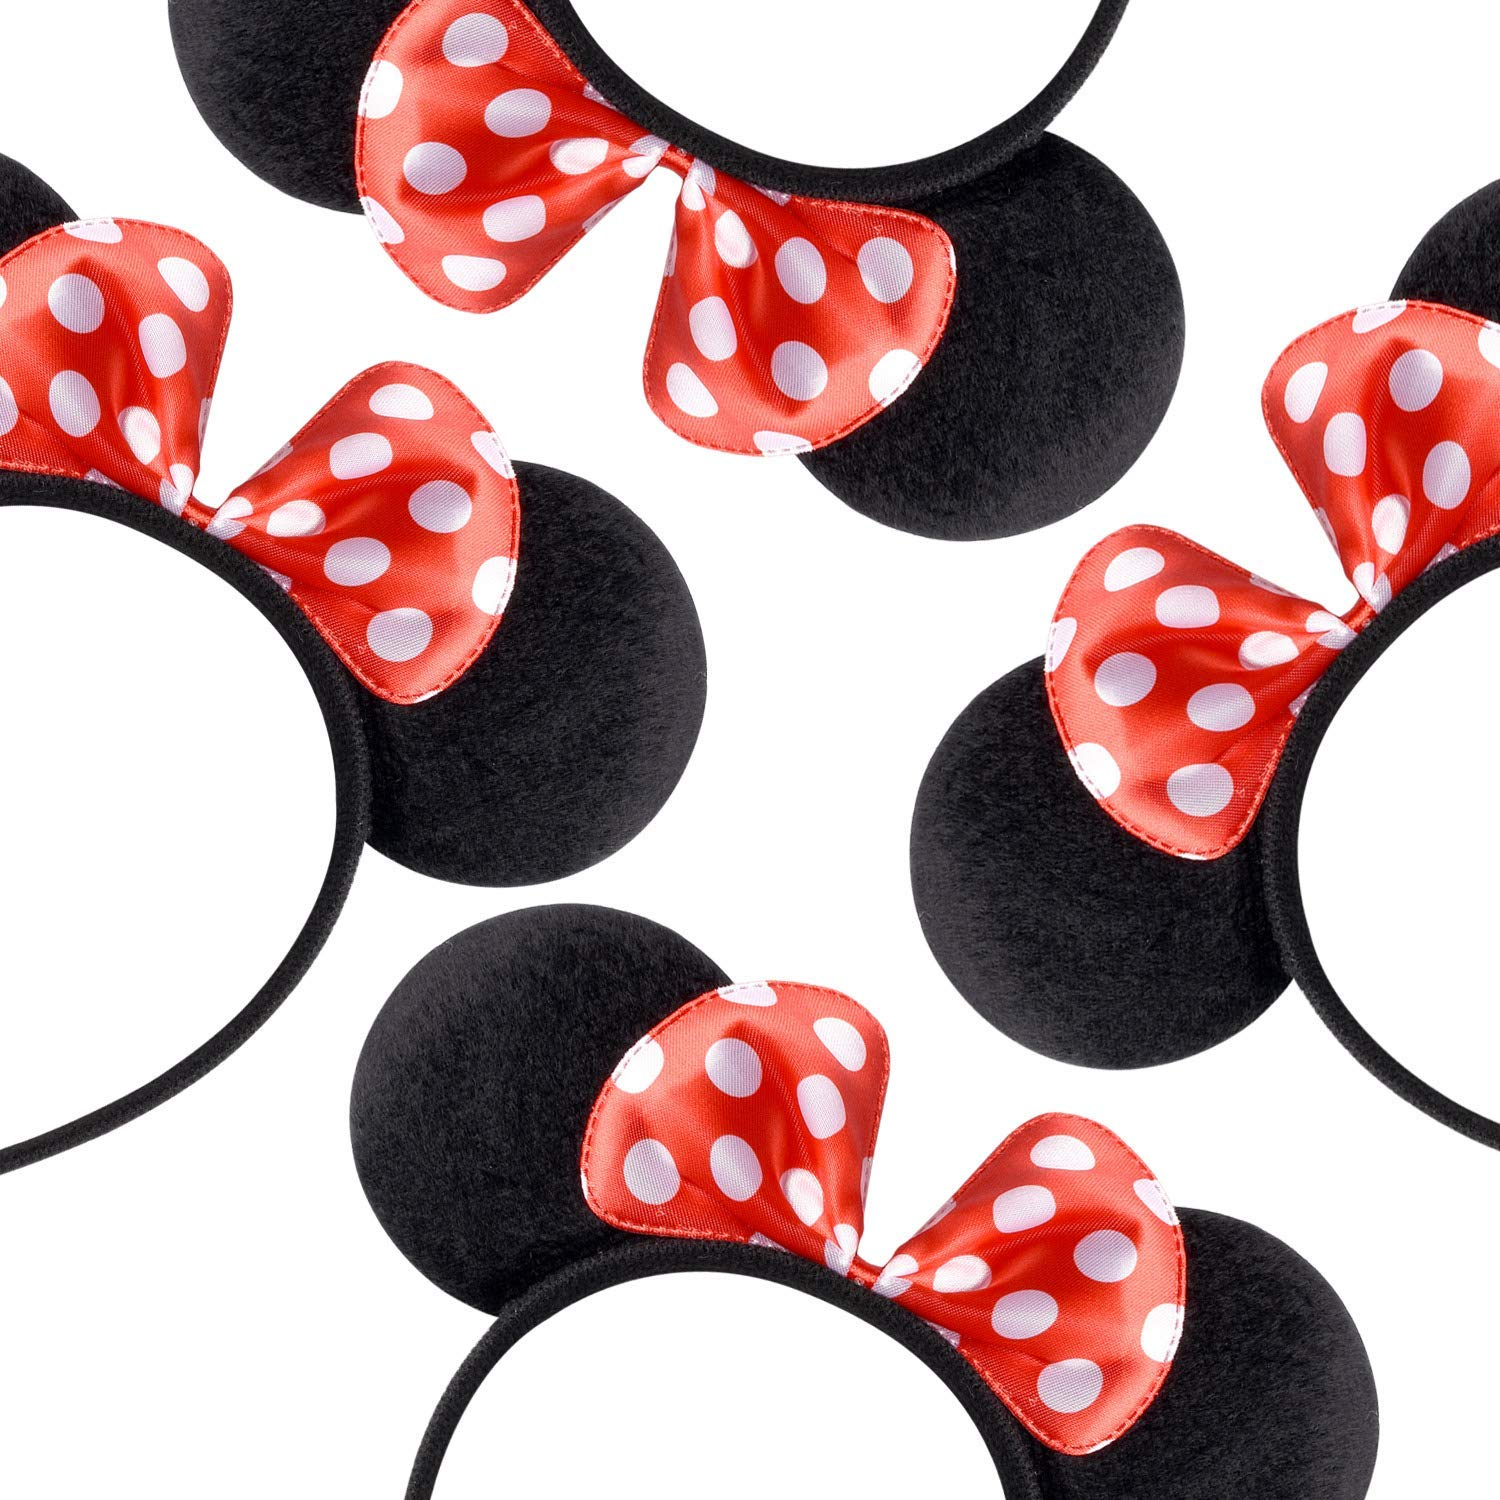 16 MINNIE MOUSE EARS HEADBANDS BLACK PLUSH PINK BOW PARTY FAVORS COSTUME MICKEY